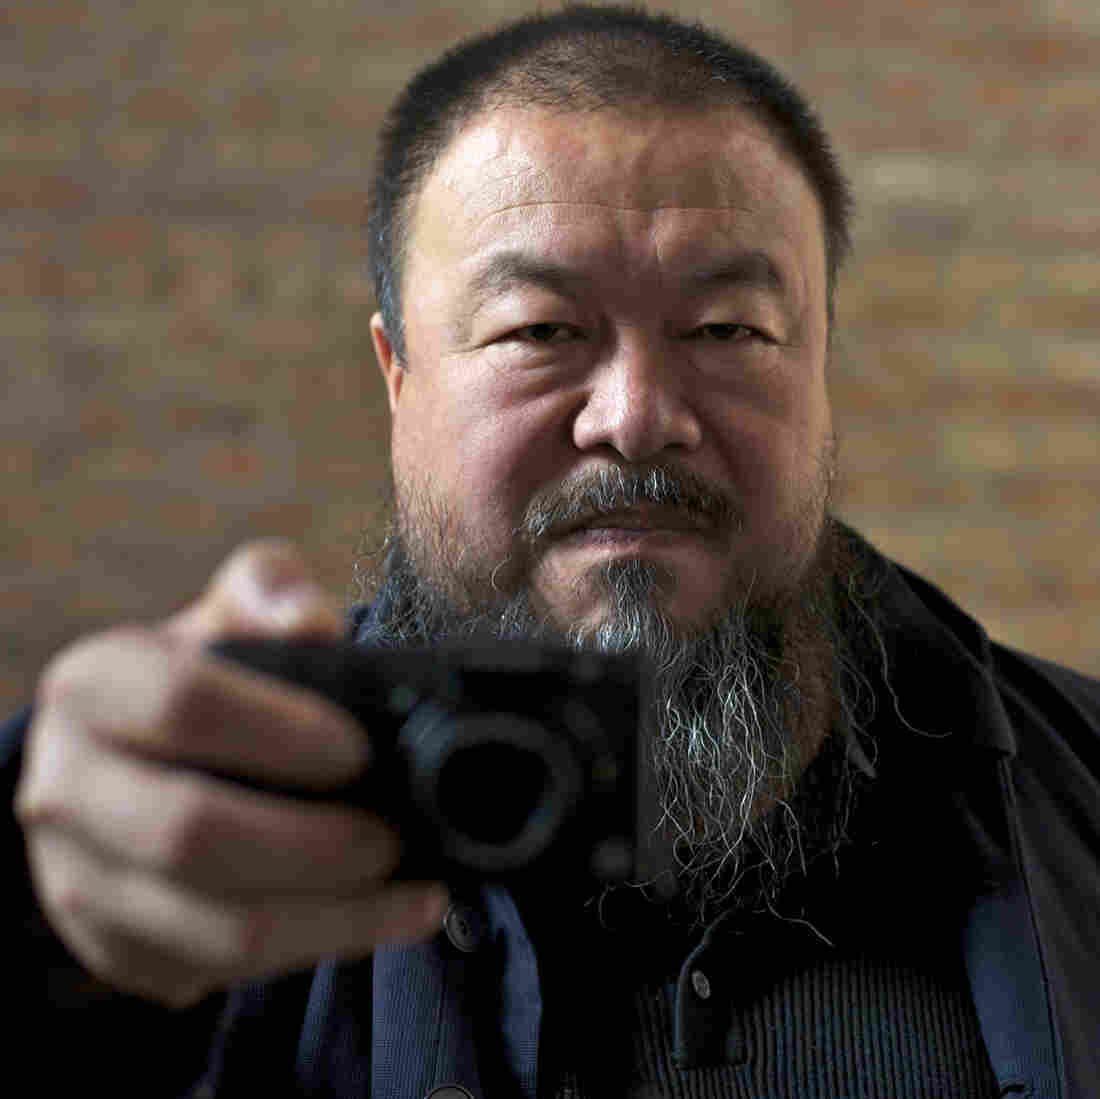 'Ai Weiwei': A Defiant Artist Pushes Back In China